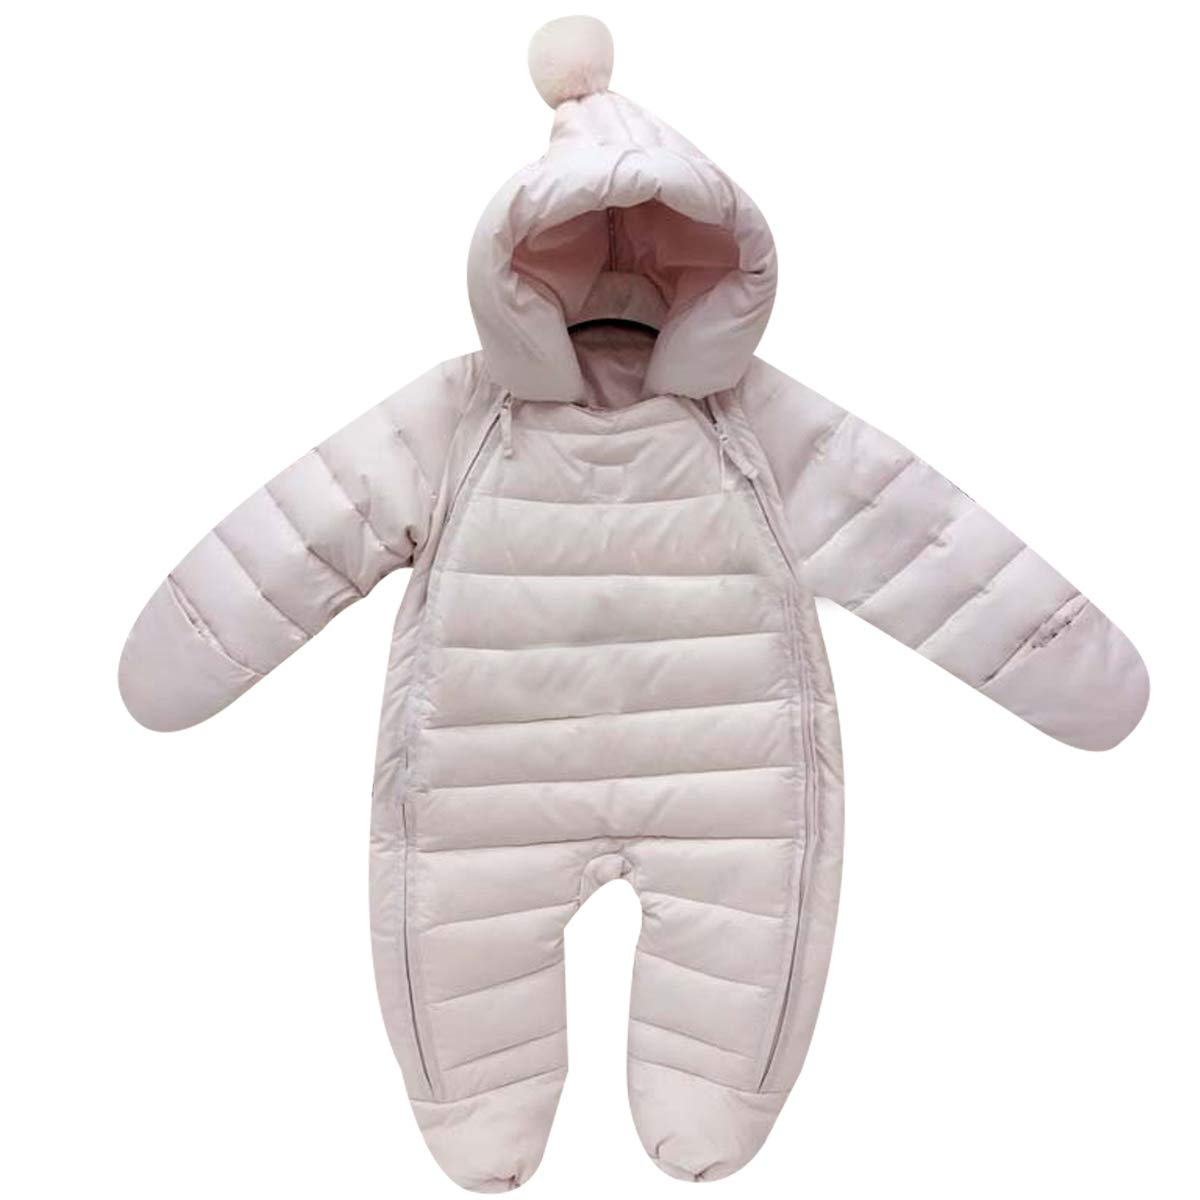 Bebone Newborn Baby Hooded Winter Puffer Snowsuit with Shoes and Gloves (Pink,3-6M) by Bebone